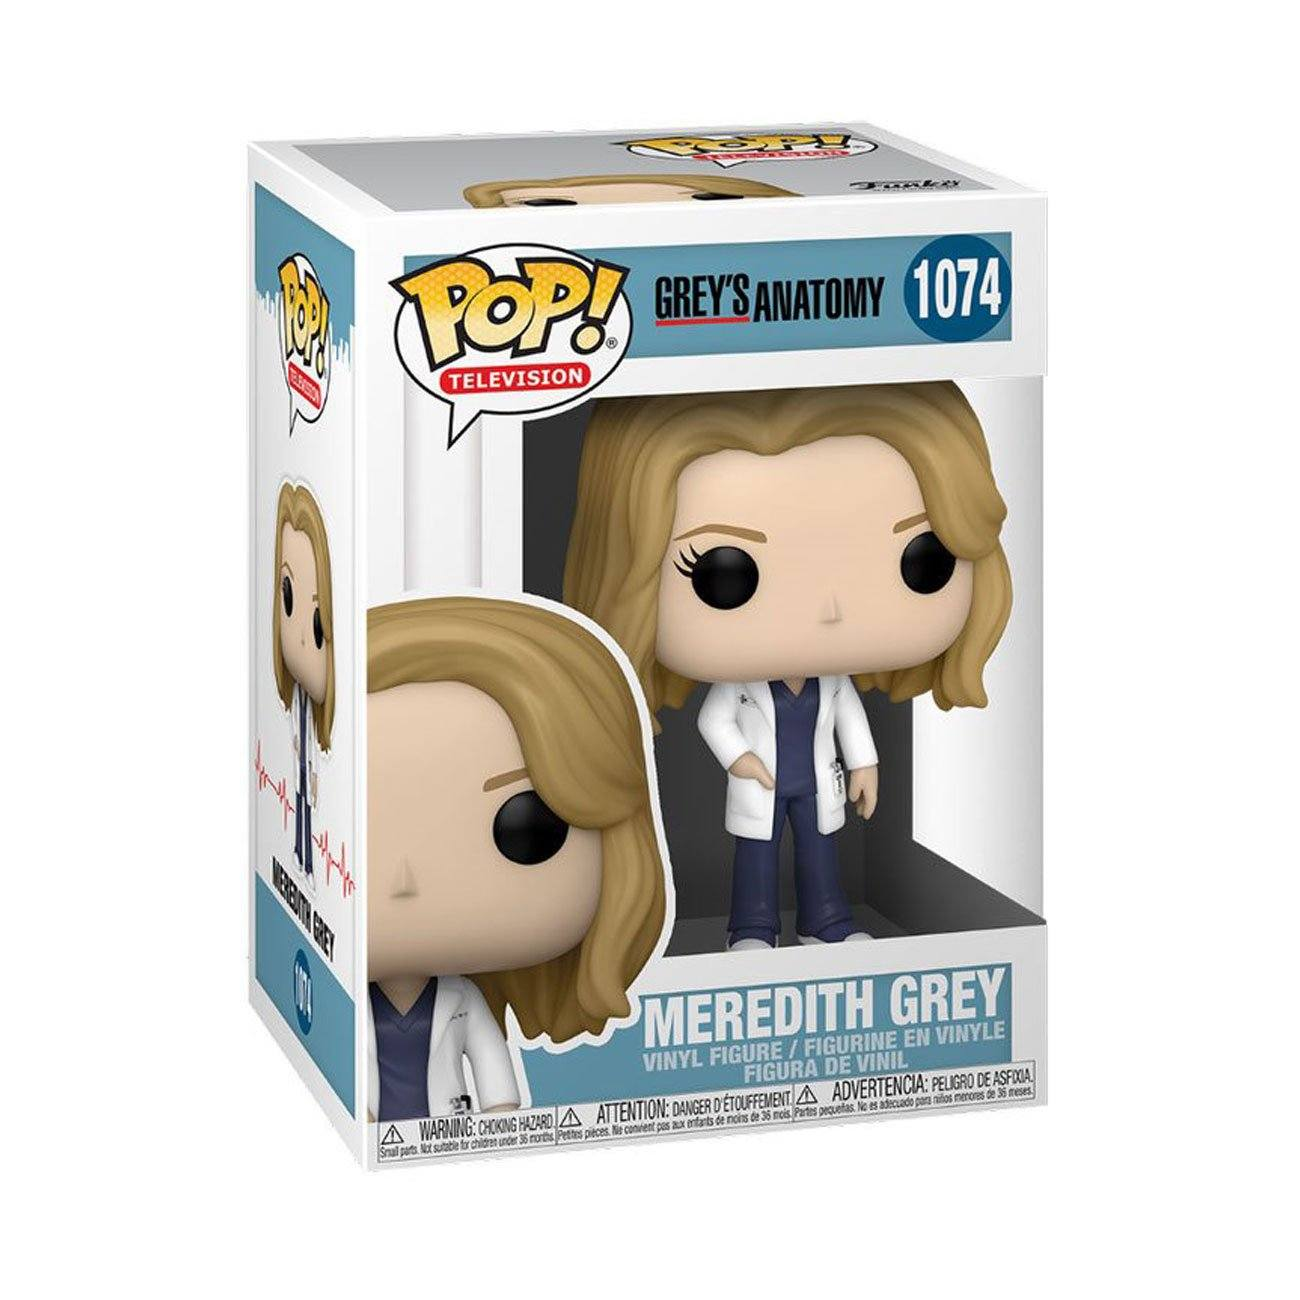 Meredith Grey #1074 Grey's Anatomy Funko POP! TV [PRE-ORDER FOR JAN 2021* DELIVERY] POP! Funko